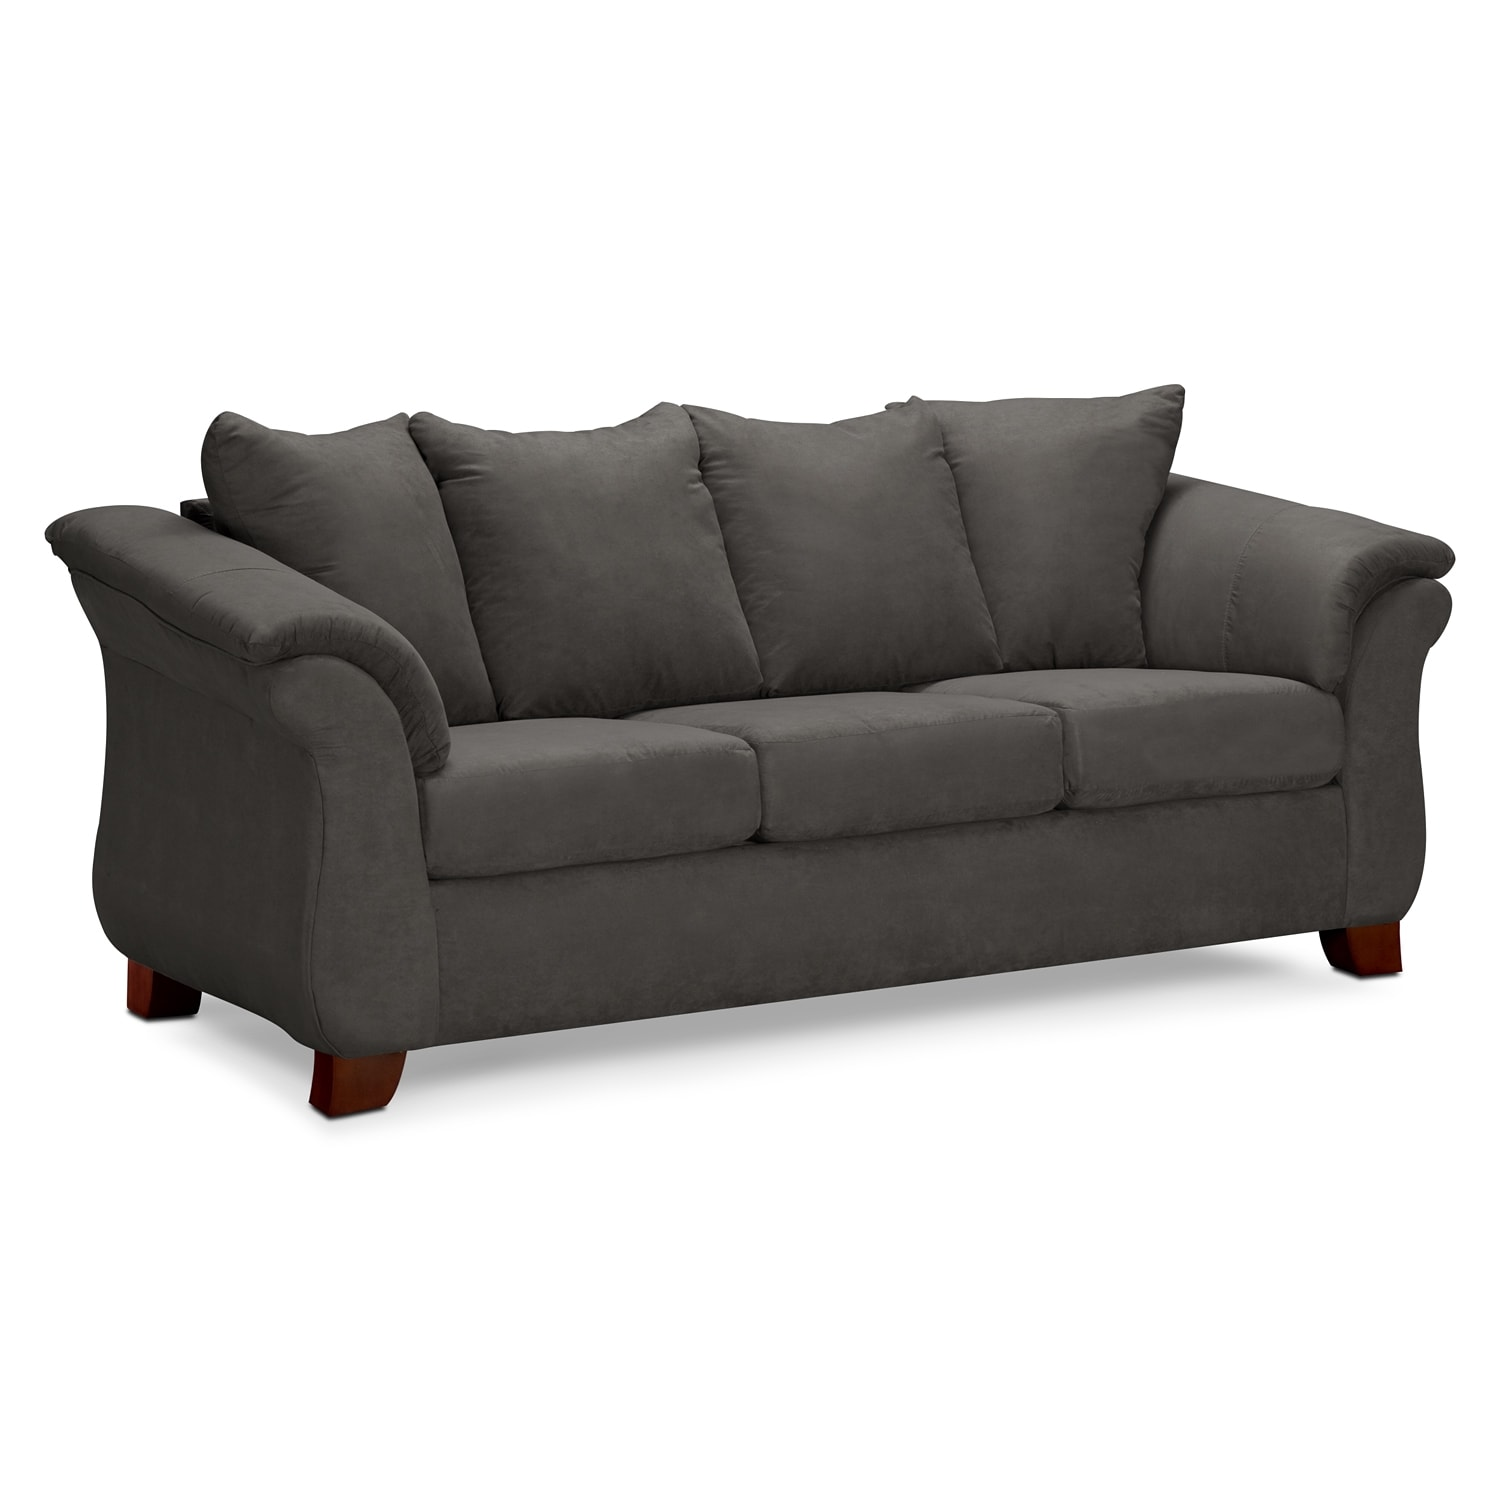 Bon Living Room Furniture   Adrian Sofa   Graphite